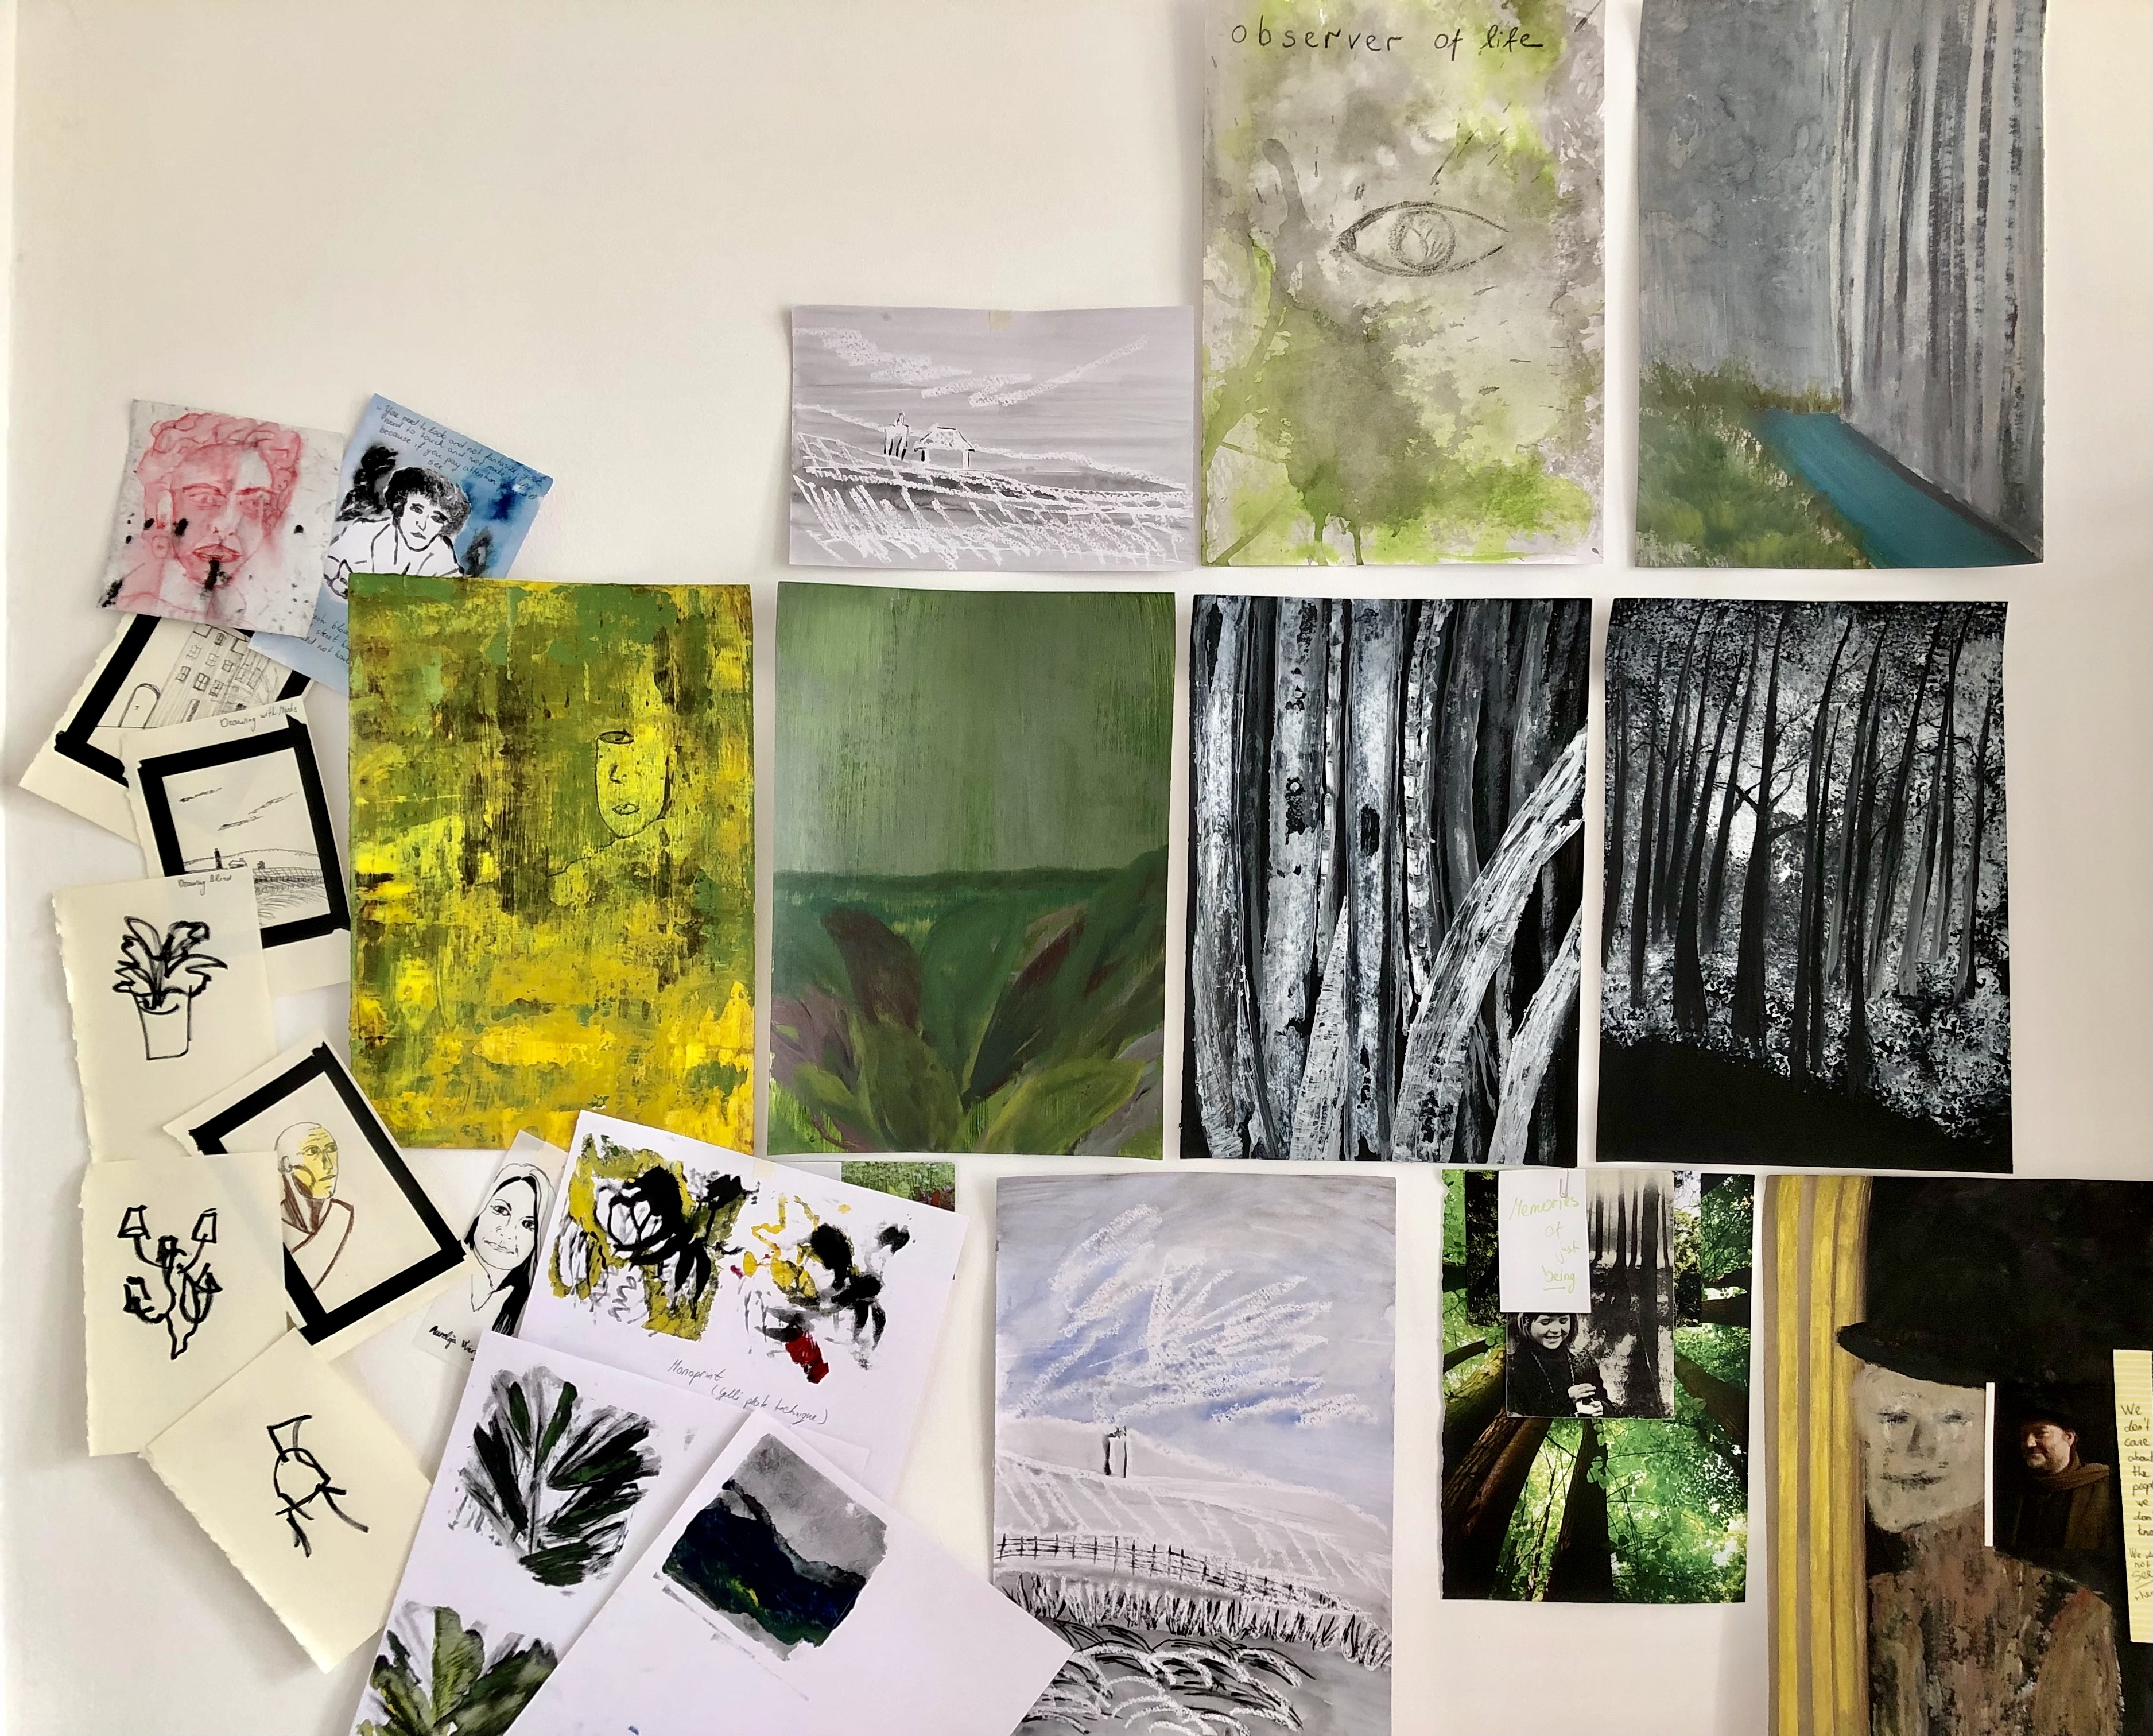 A collection of sketches by Aurelija Verger created on the short course